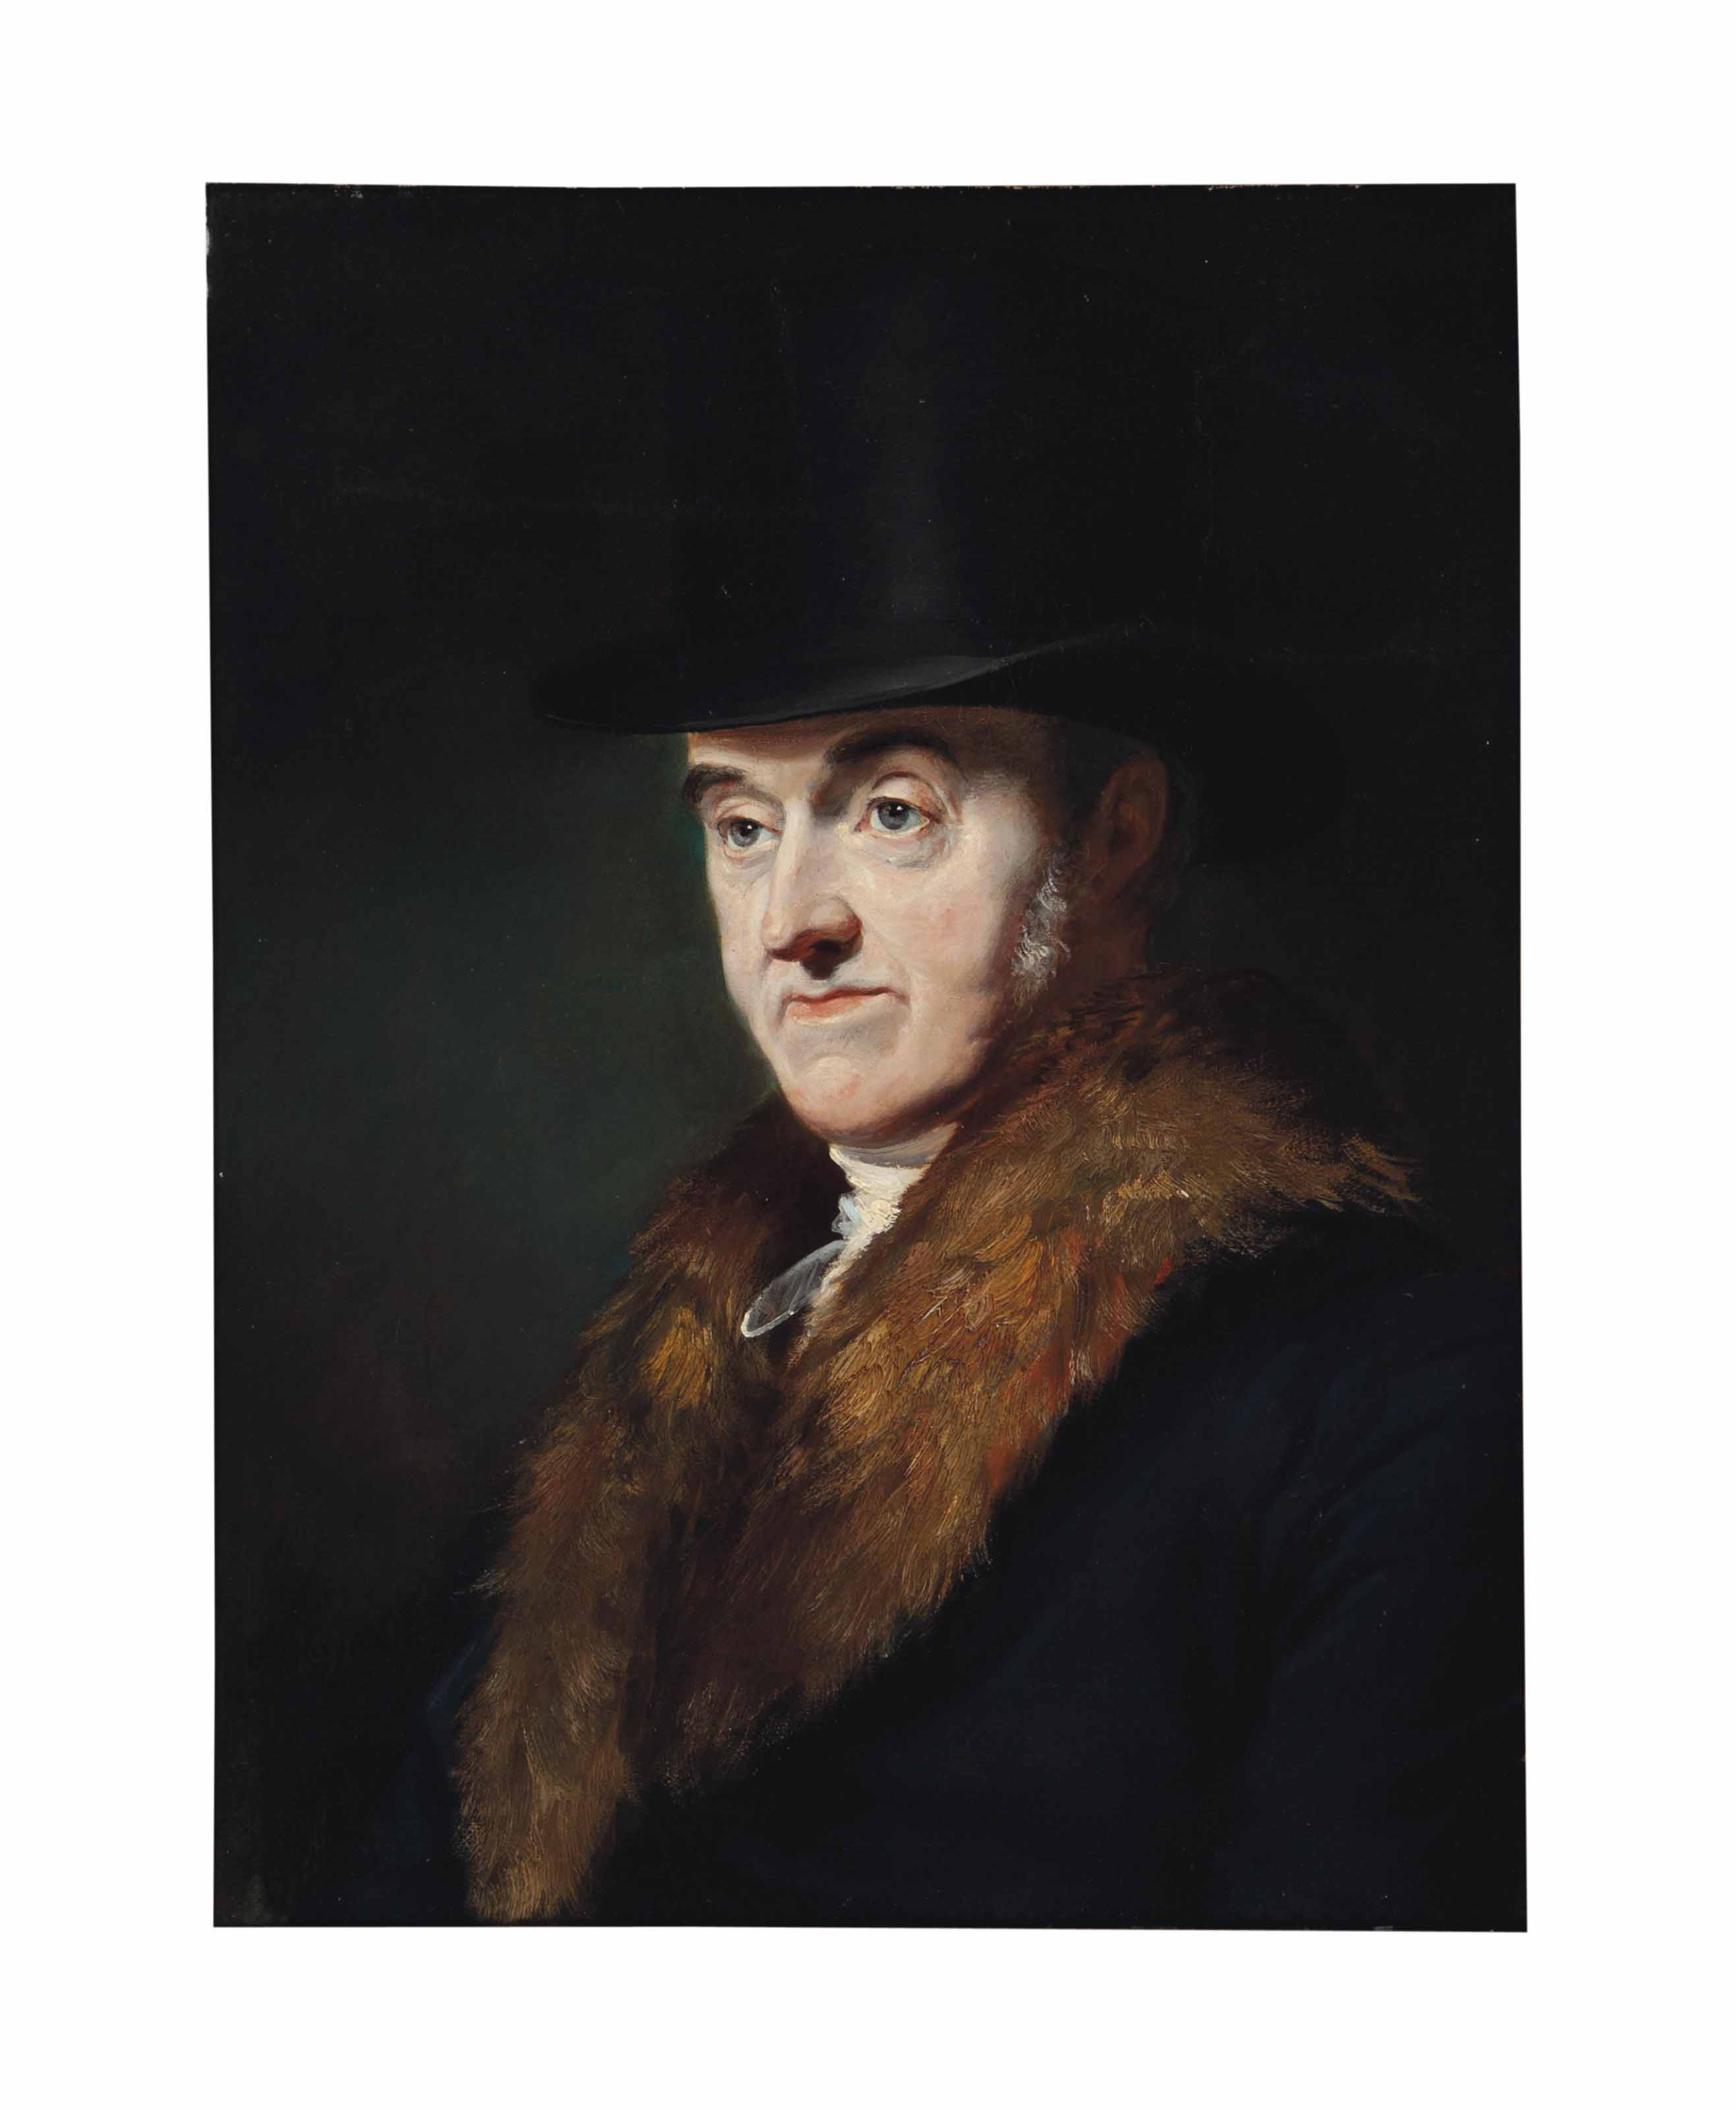 Portrait of Samuel Rogers, bust-length, in a black overcoat with a fur collar and a top hat